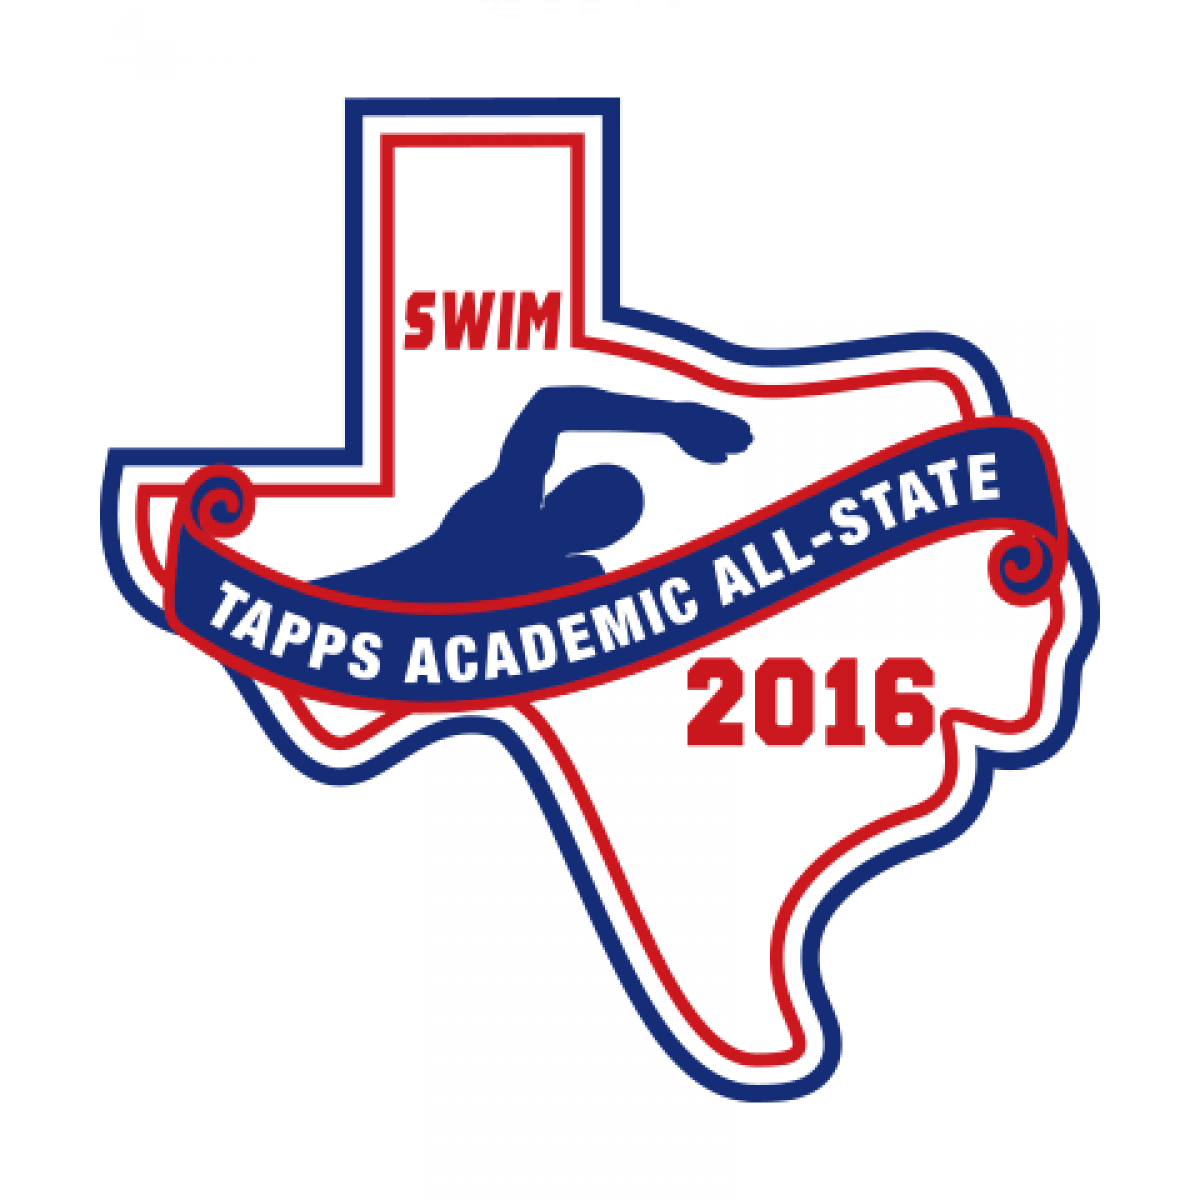 Felt TAPPS 2016 Swim Academic All-State Patch